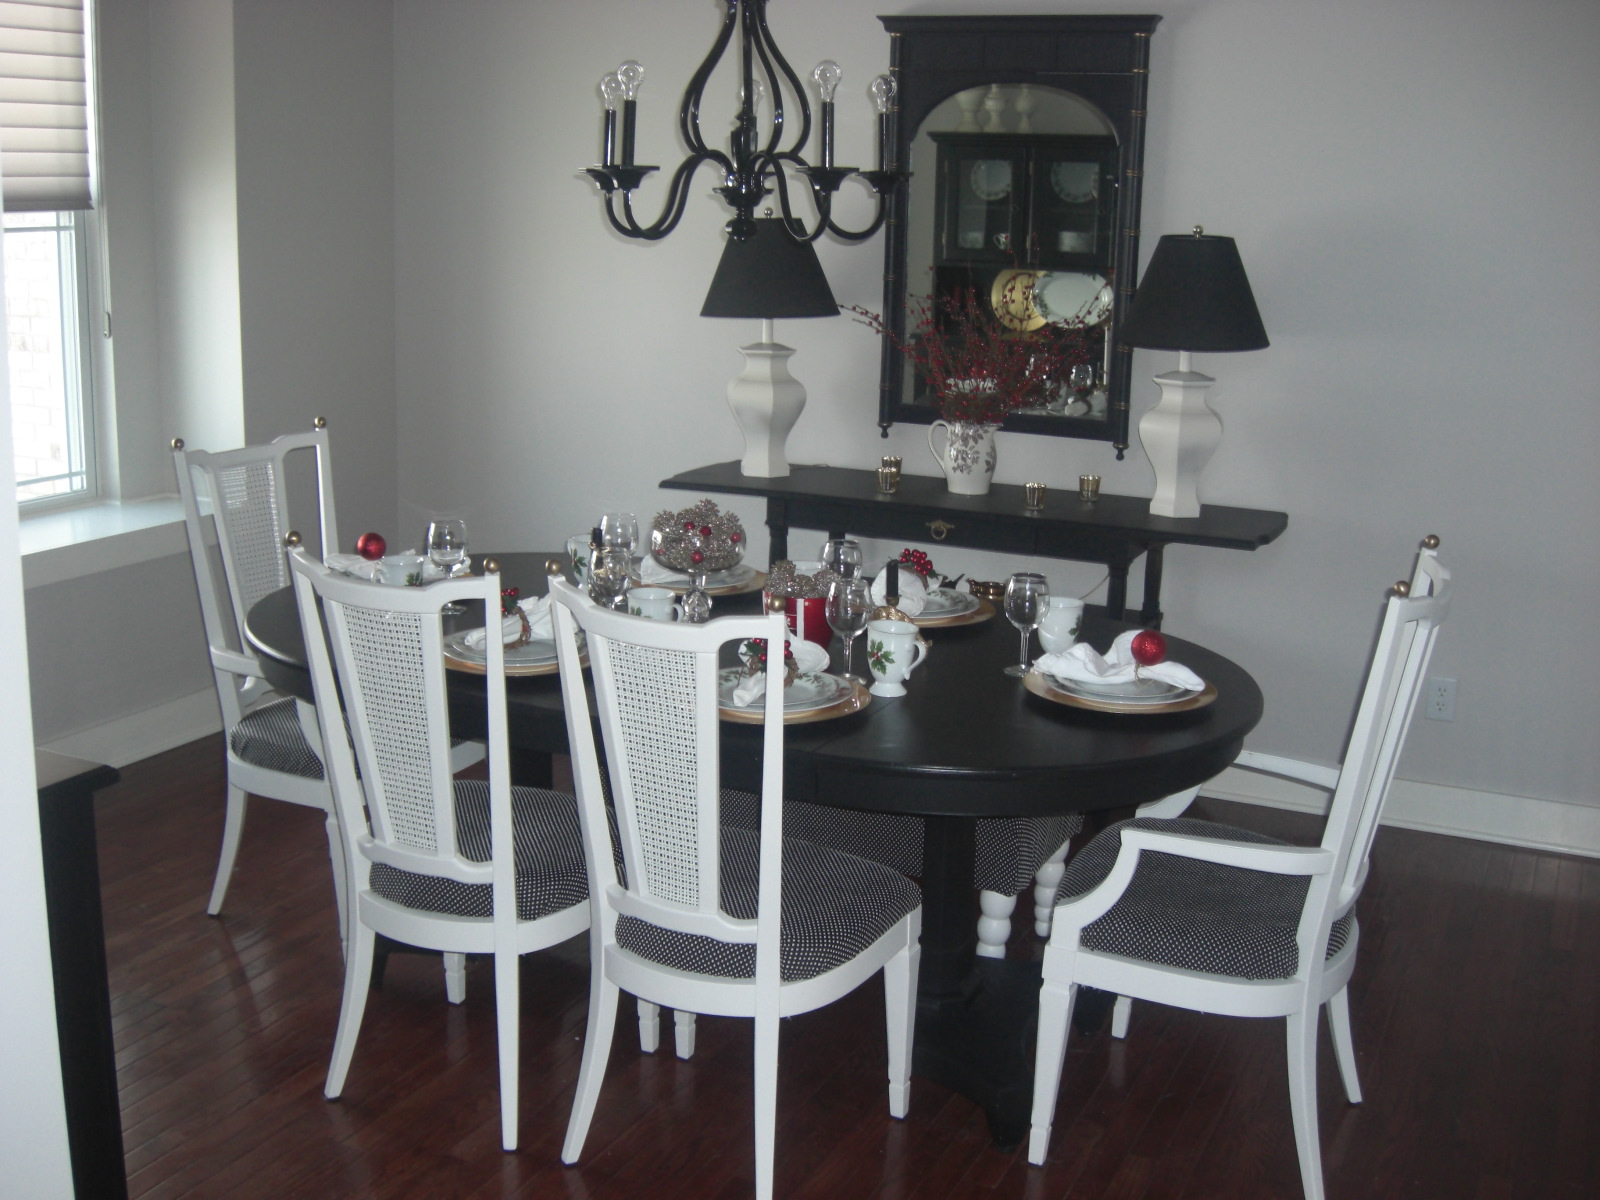 The dining room table laurie jones home for Painted dining table before and after